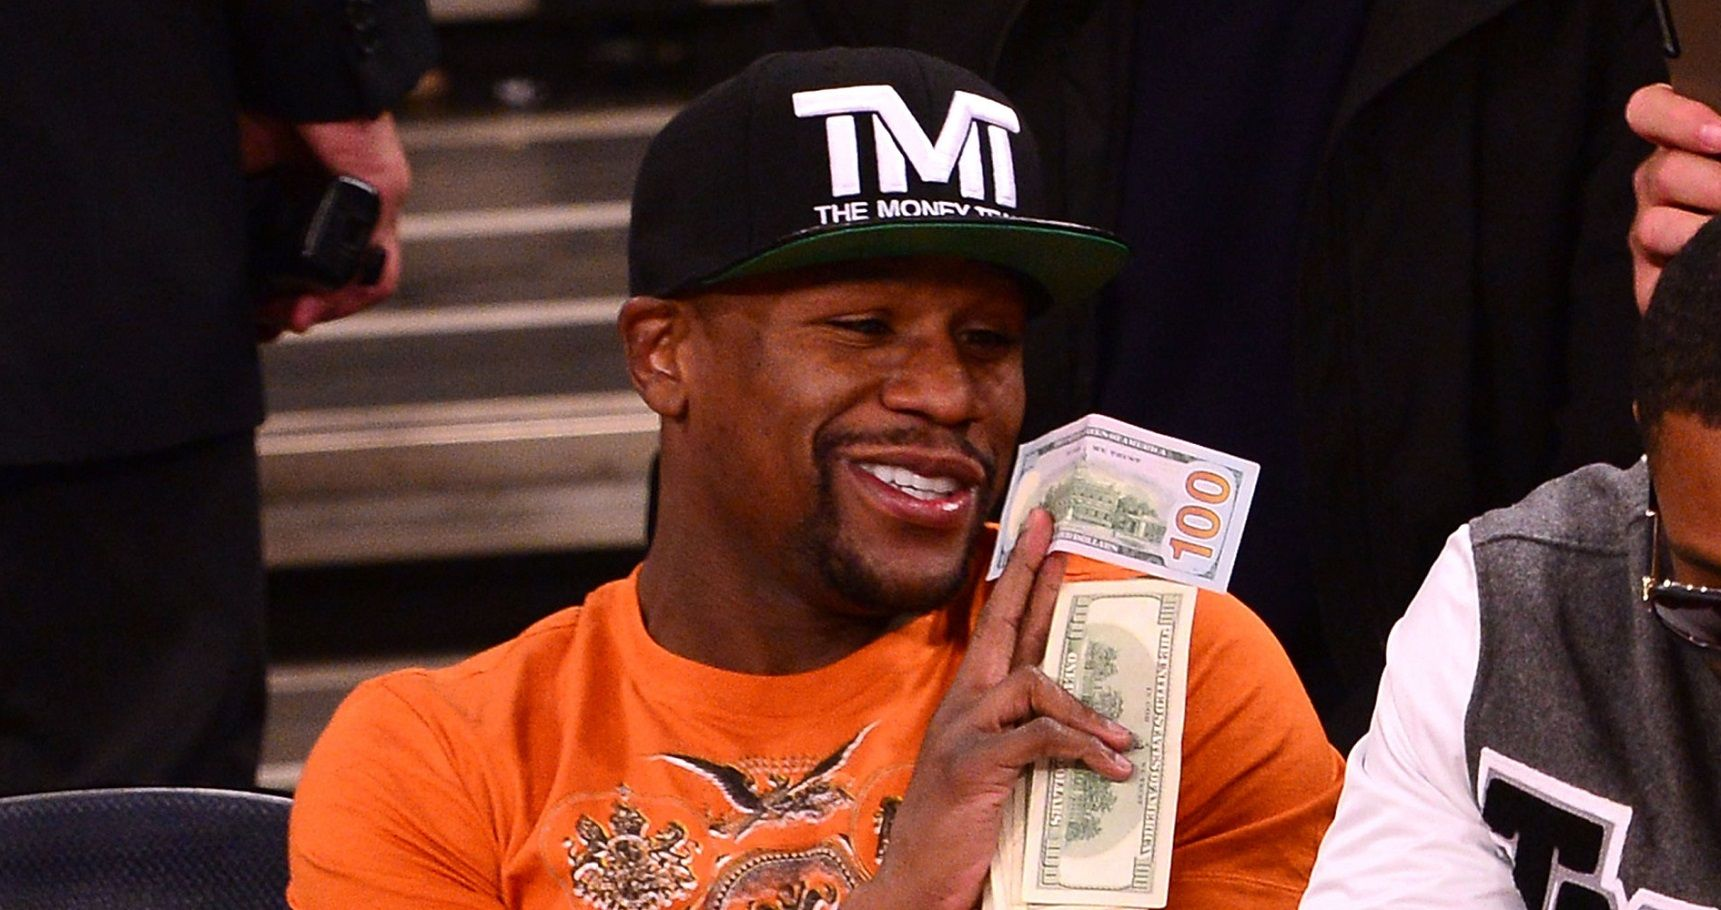 The 10 Most Ridiculous Ways Famous Athletes Blew Their Money